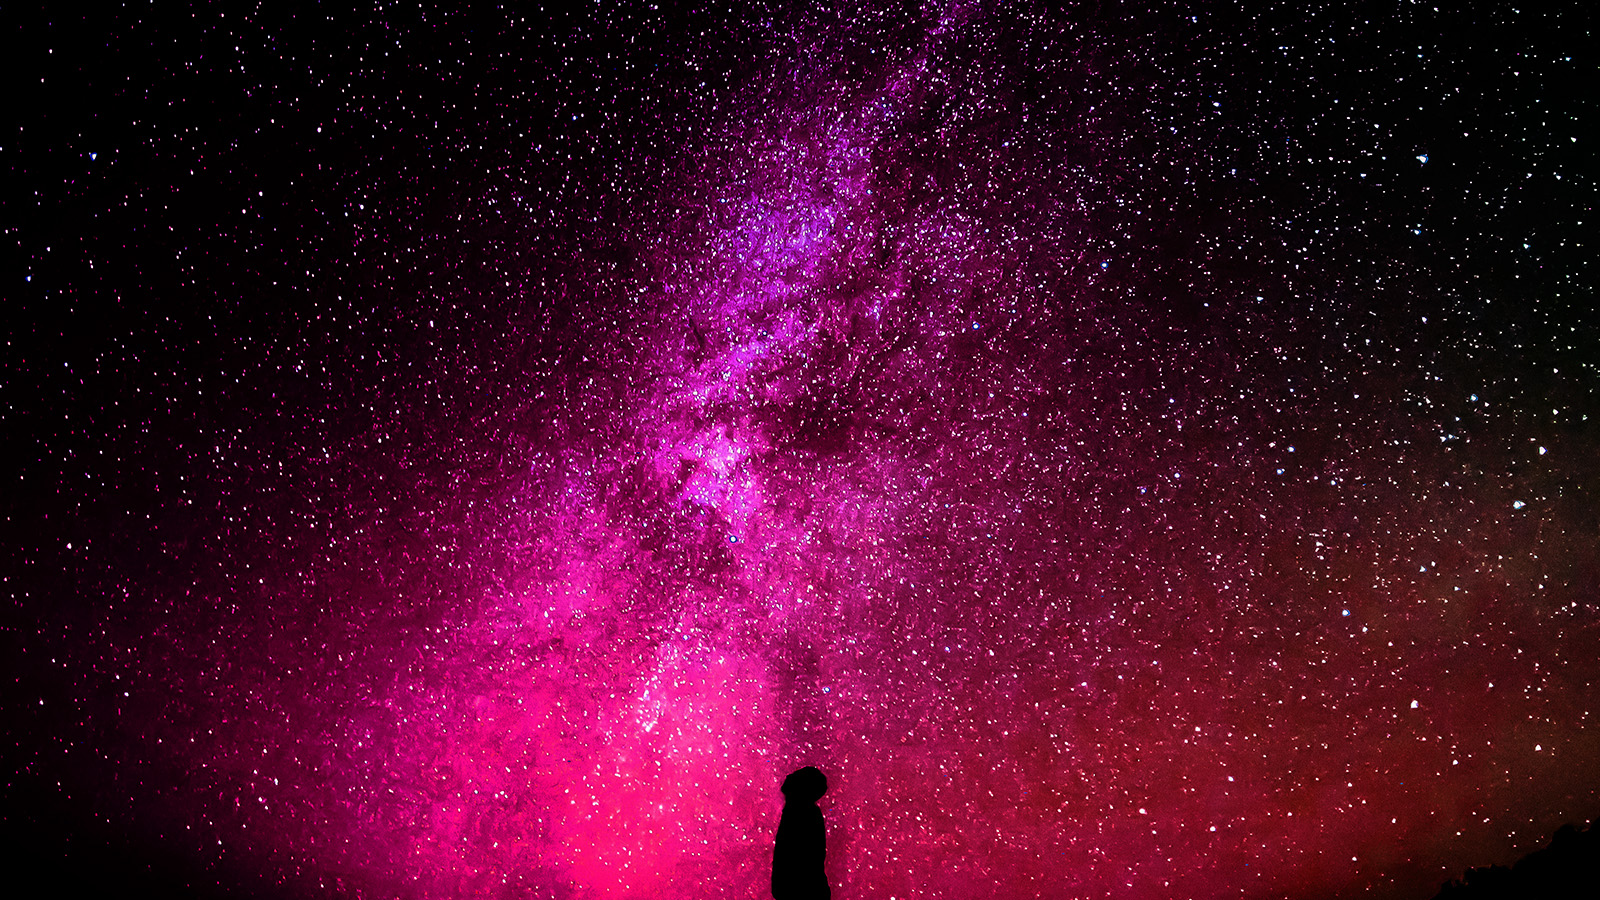 wallpaper for desktop, laptop | nb17-sky-galaxy-milkyway ...